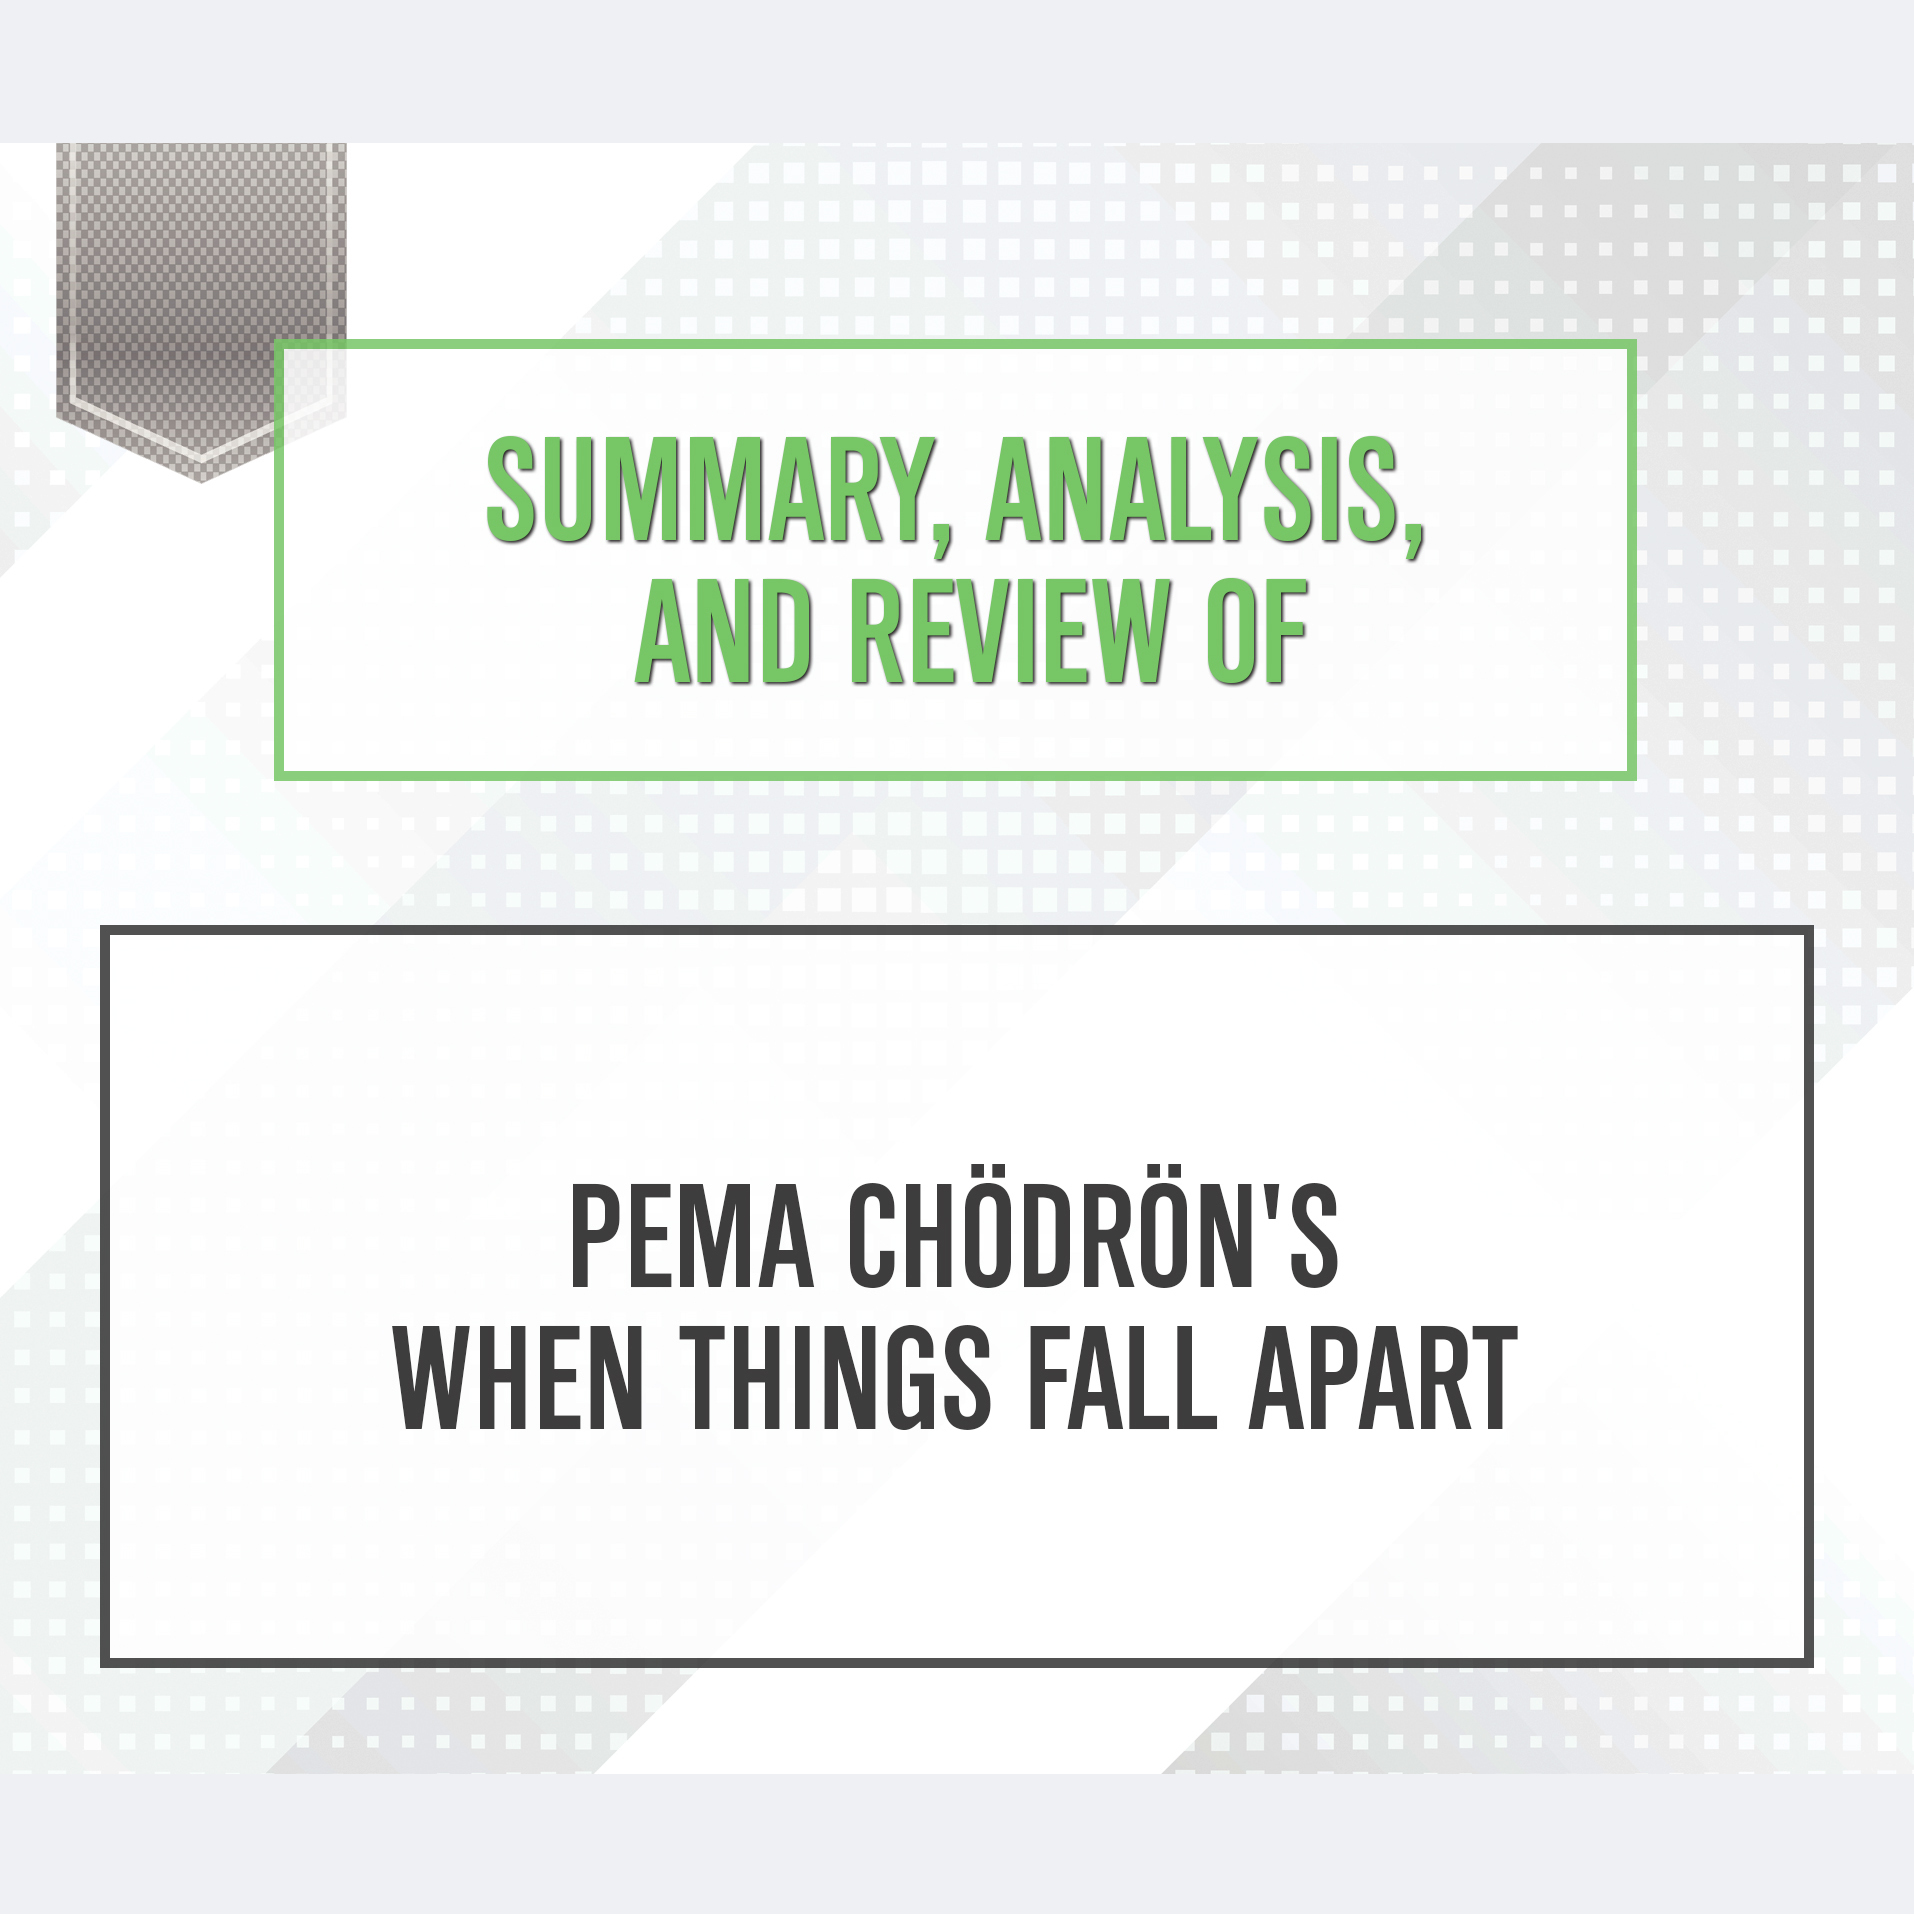 Summary, Analysis, And Review Of Pema Chodron's When